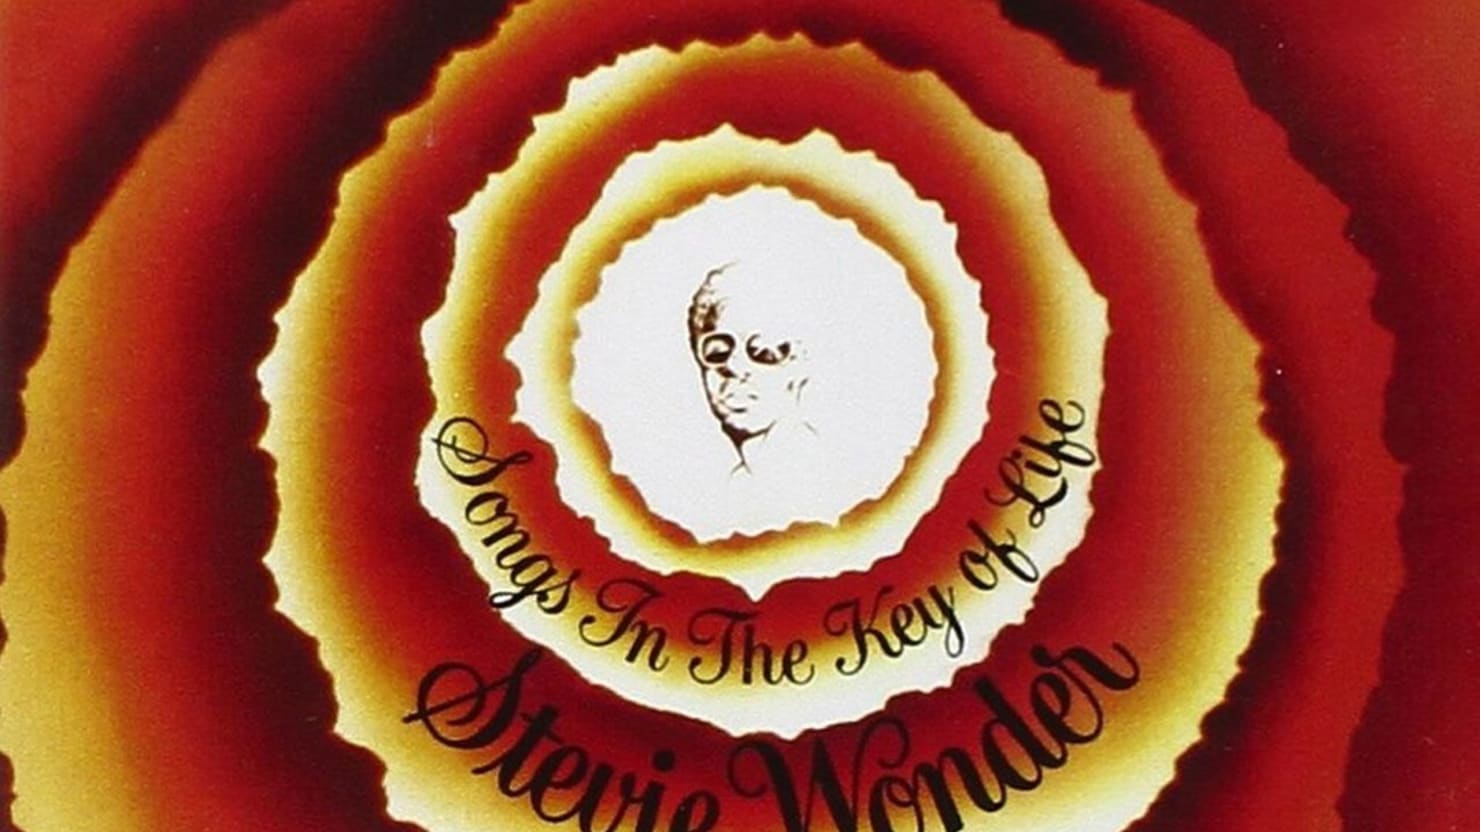 Stevie Wonder's 'Songs in the Key of Life' Turns 40: The Masterpiece That Captured Every Color of Life